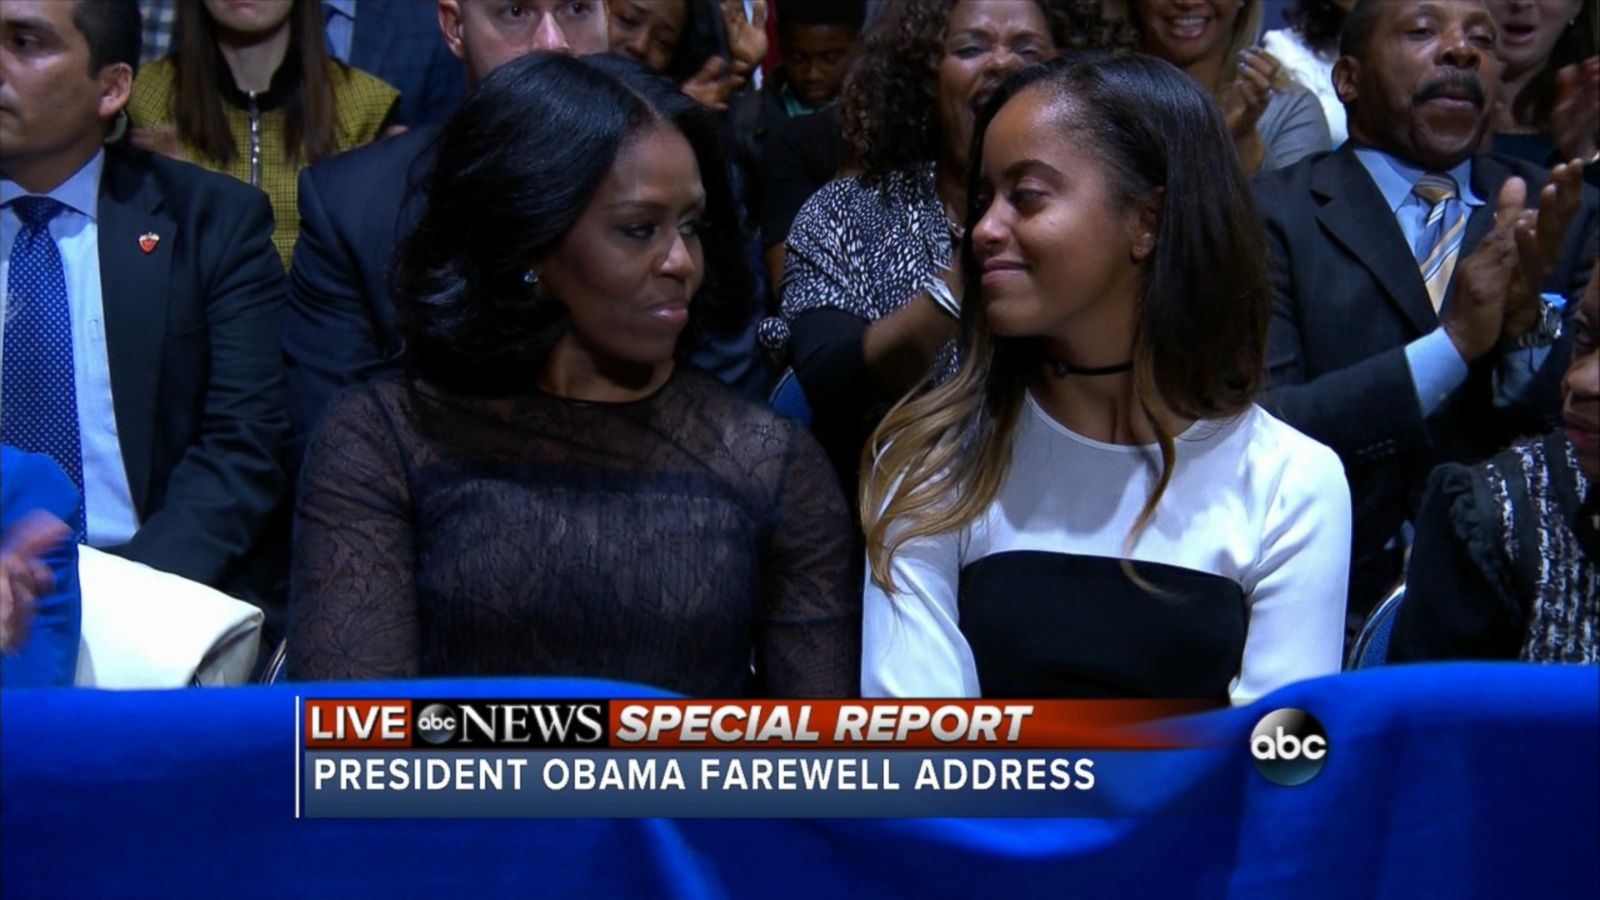 VIDEO: Obama made the remarks during his farewell speech.